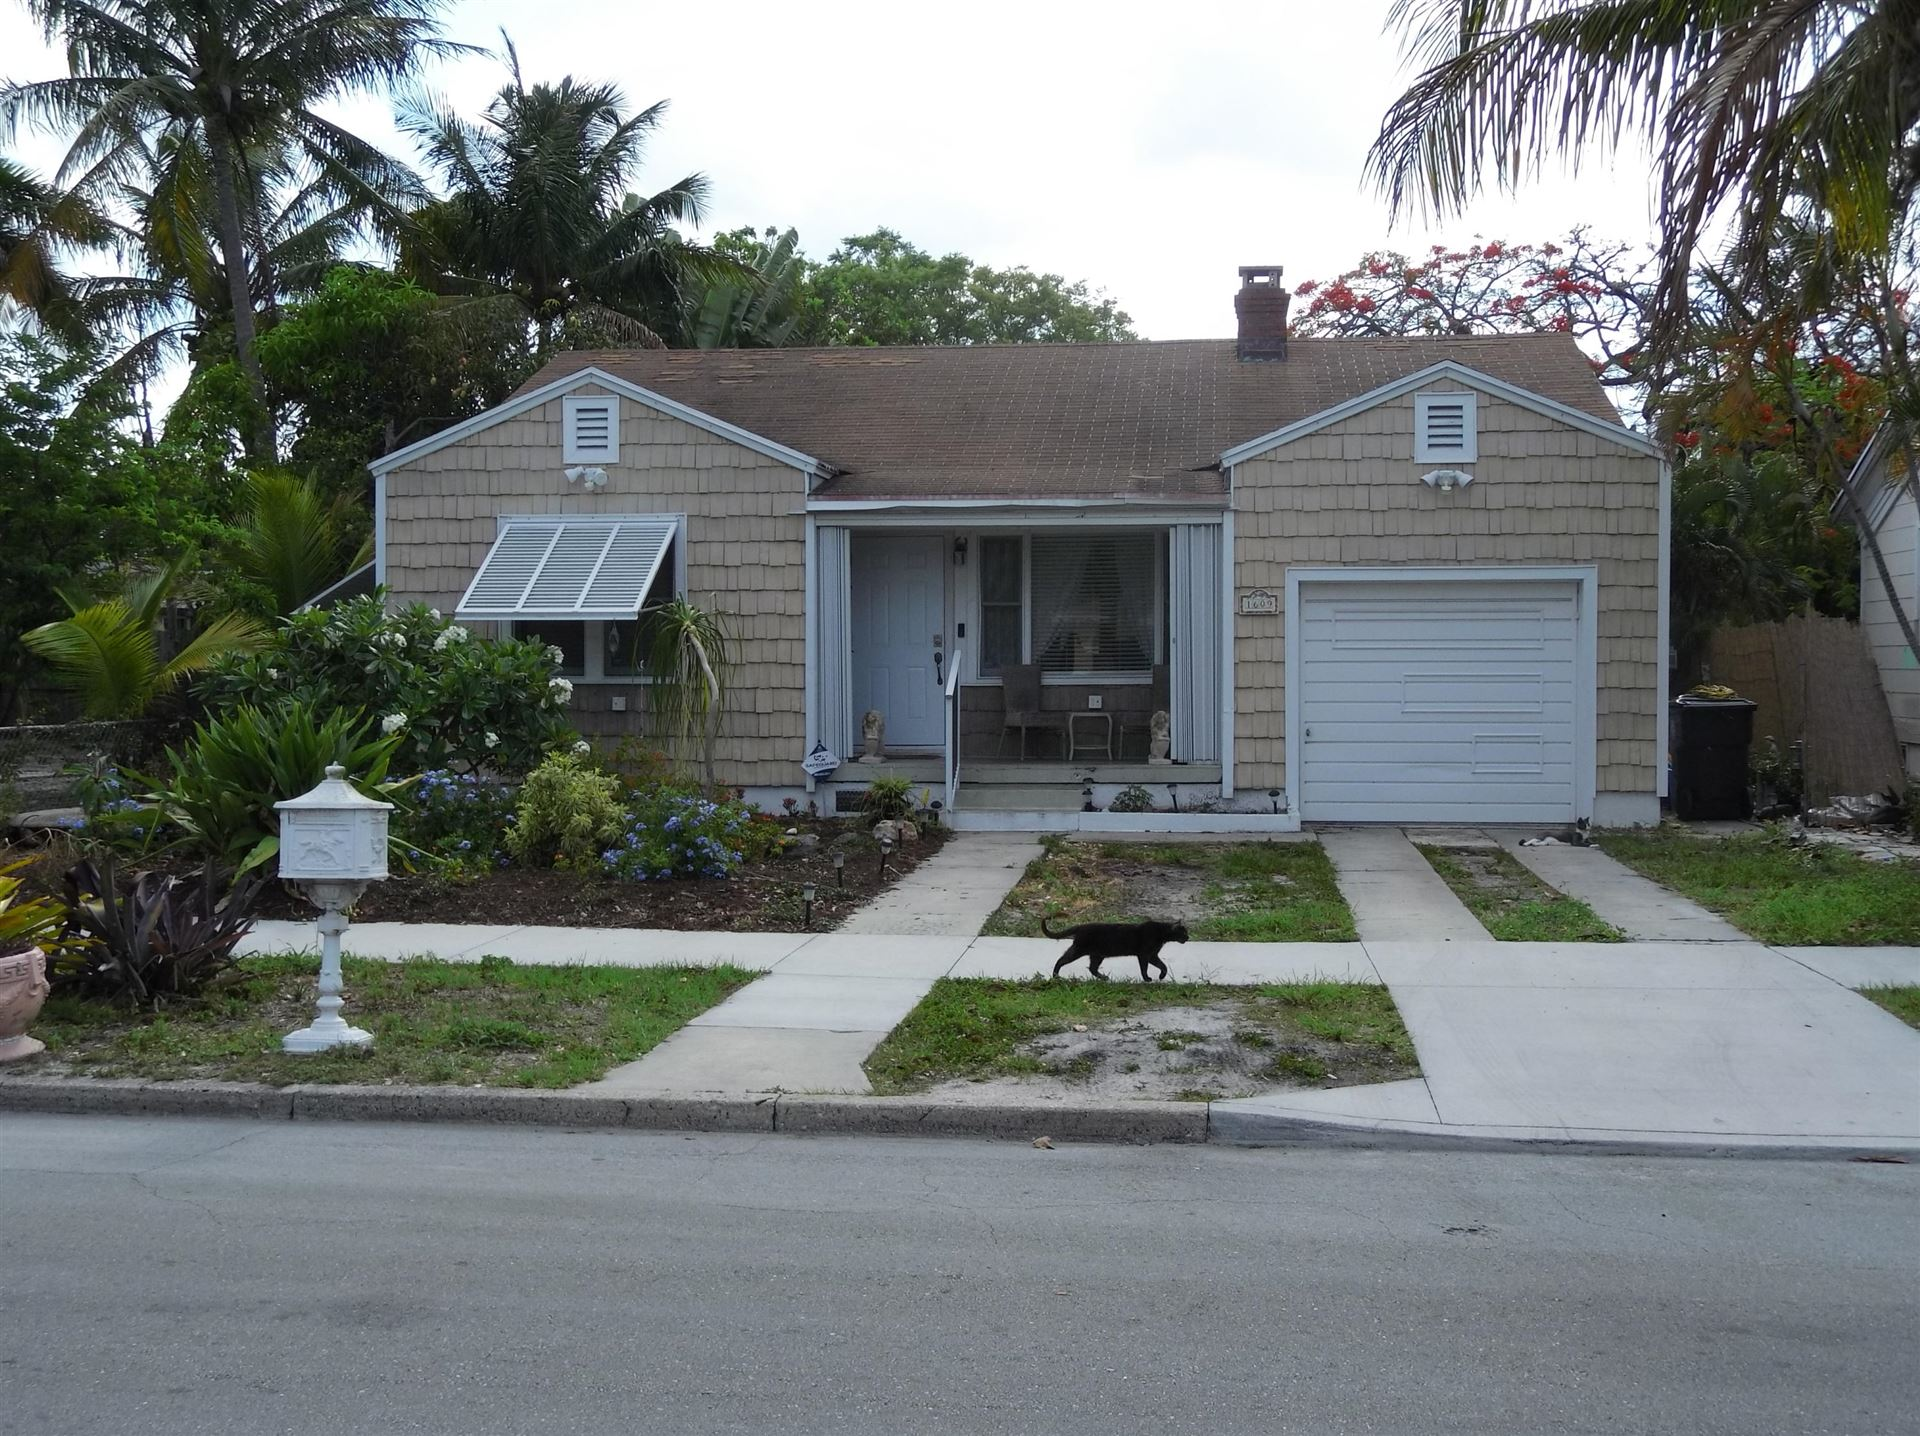 1609 N D Street, Lake Worth, FL 33460 - #: RX-10622212